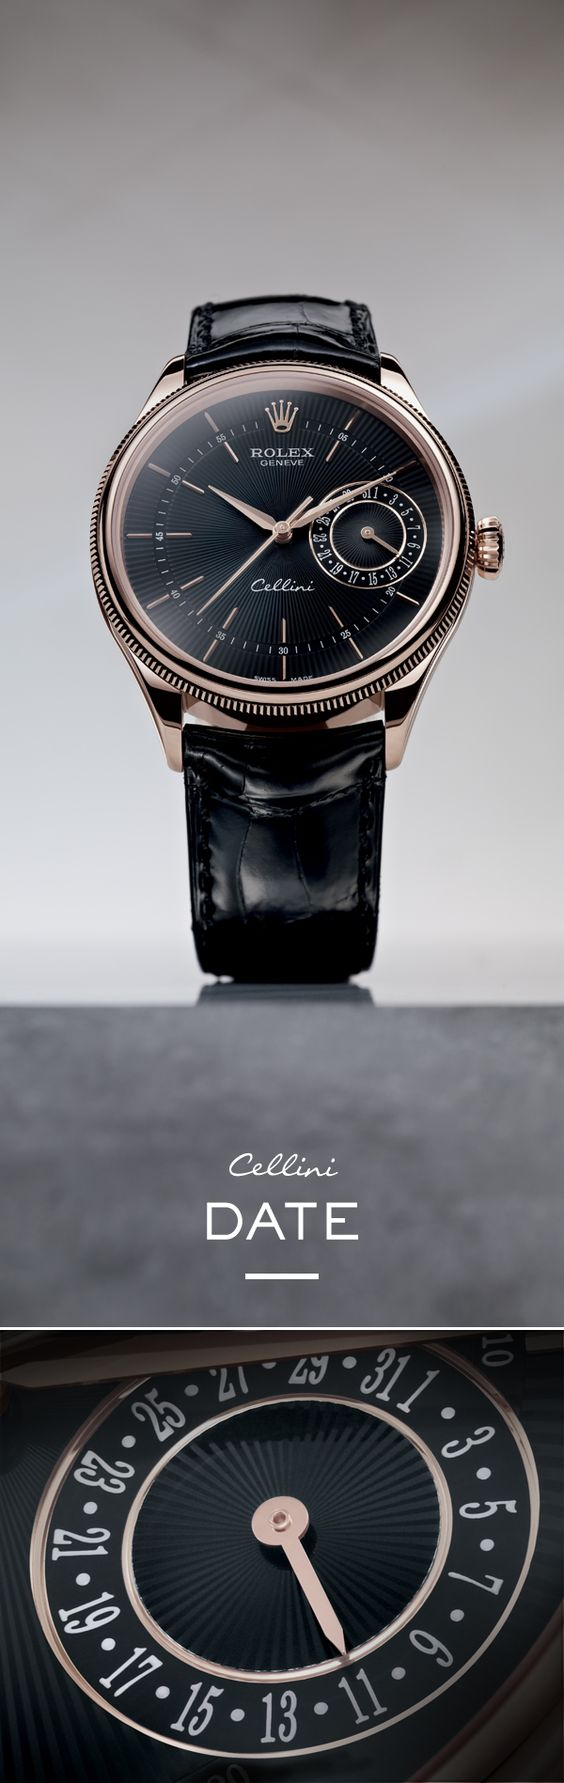 """The new Rolex Cellini Date 39 mm in Everose gold with a black dial featuring a """"rayon flammé de la gloire"""" guilloche motif and mounted on an alligator leather strap."""